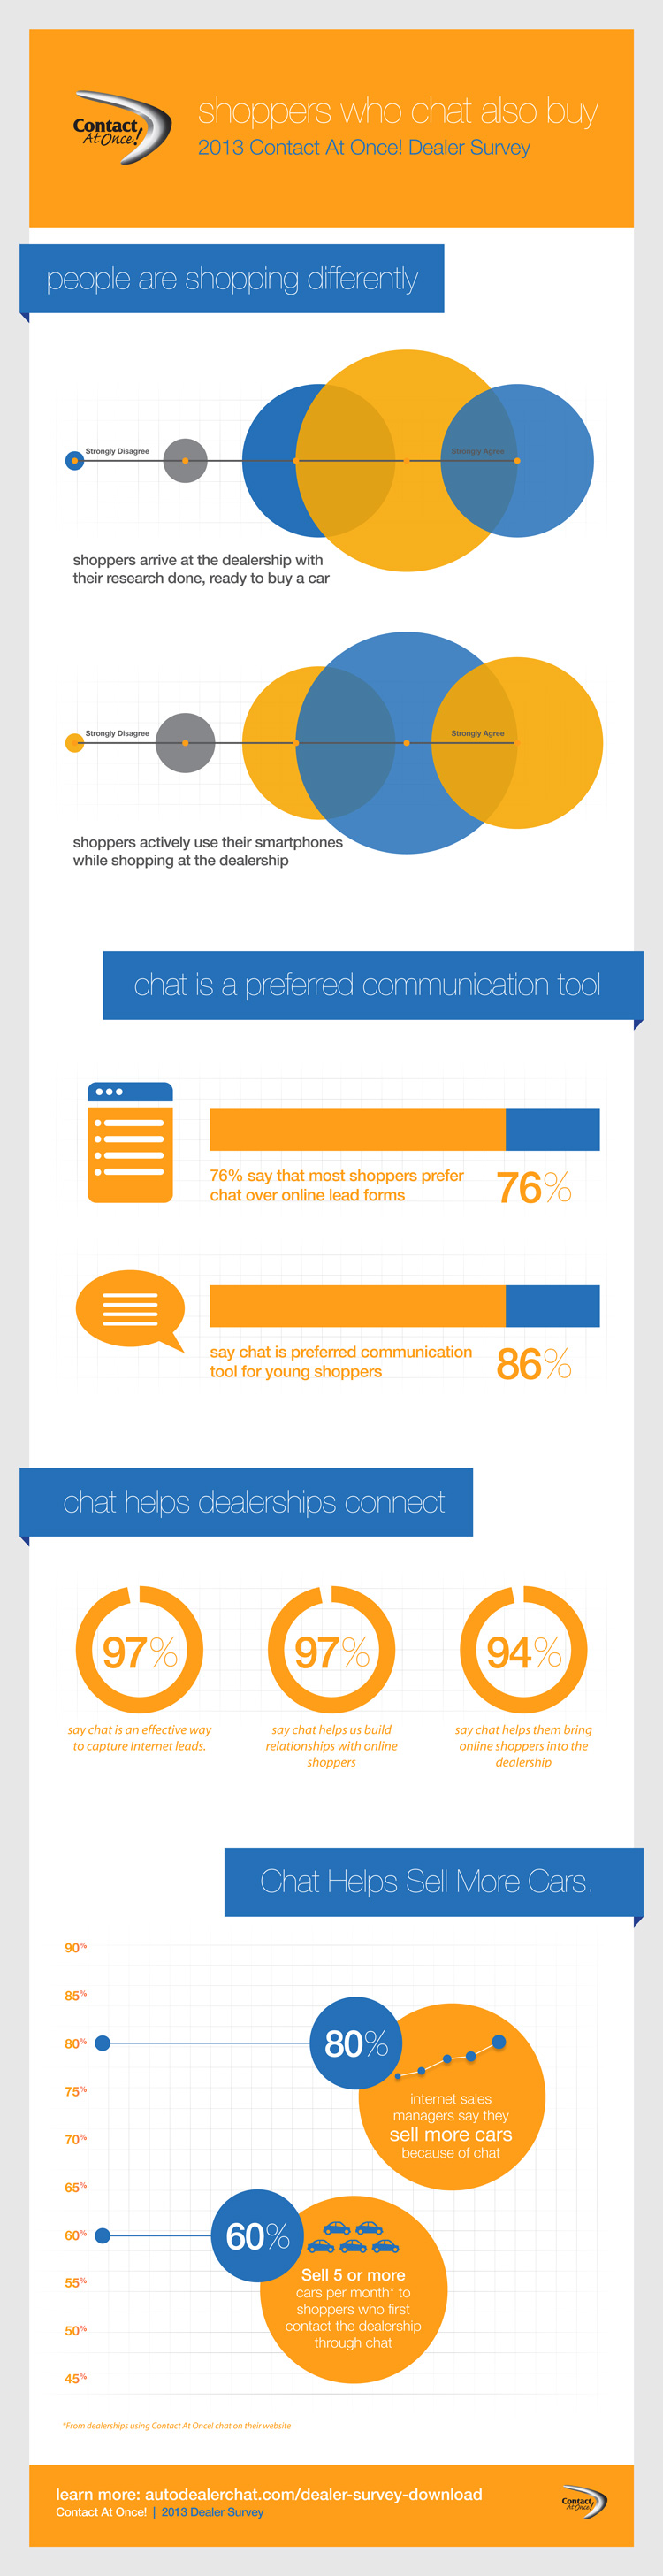 Contact-At-Once!-Dealer-Survey-Infographic_final